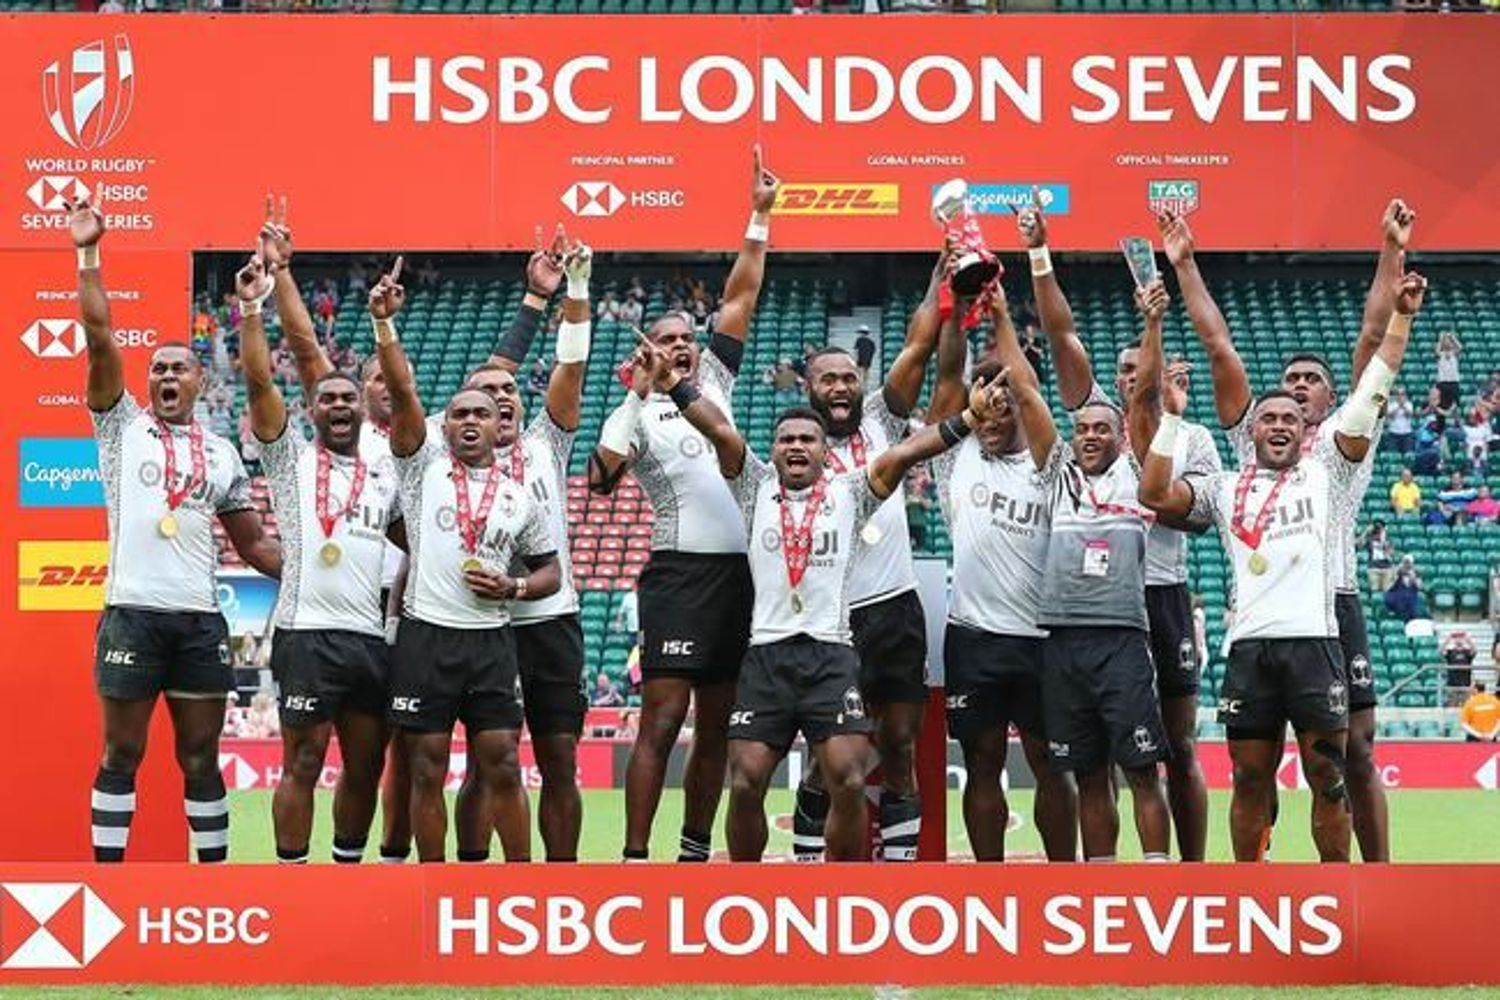 Pools and match schedule revealed for HSBC London Sevens - Rugby